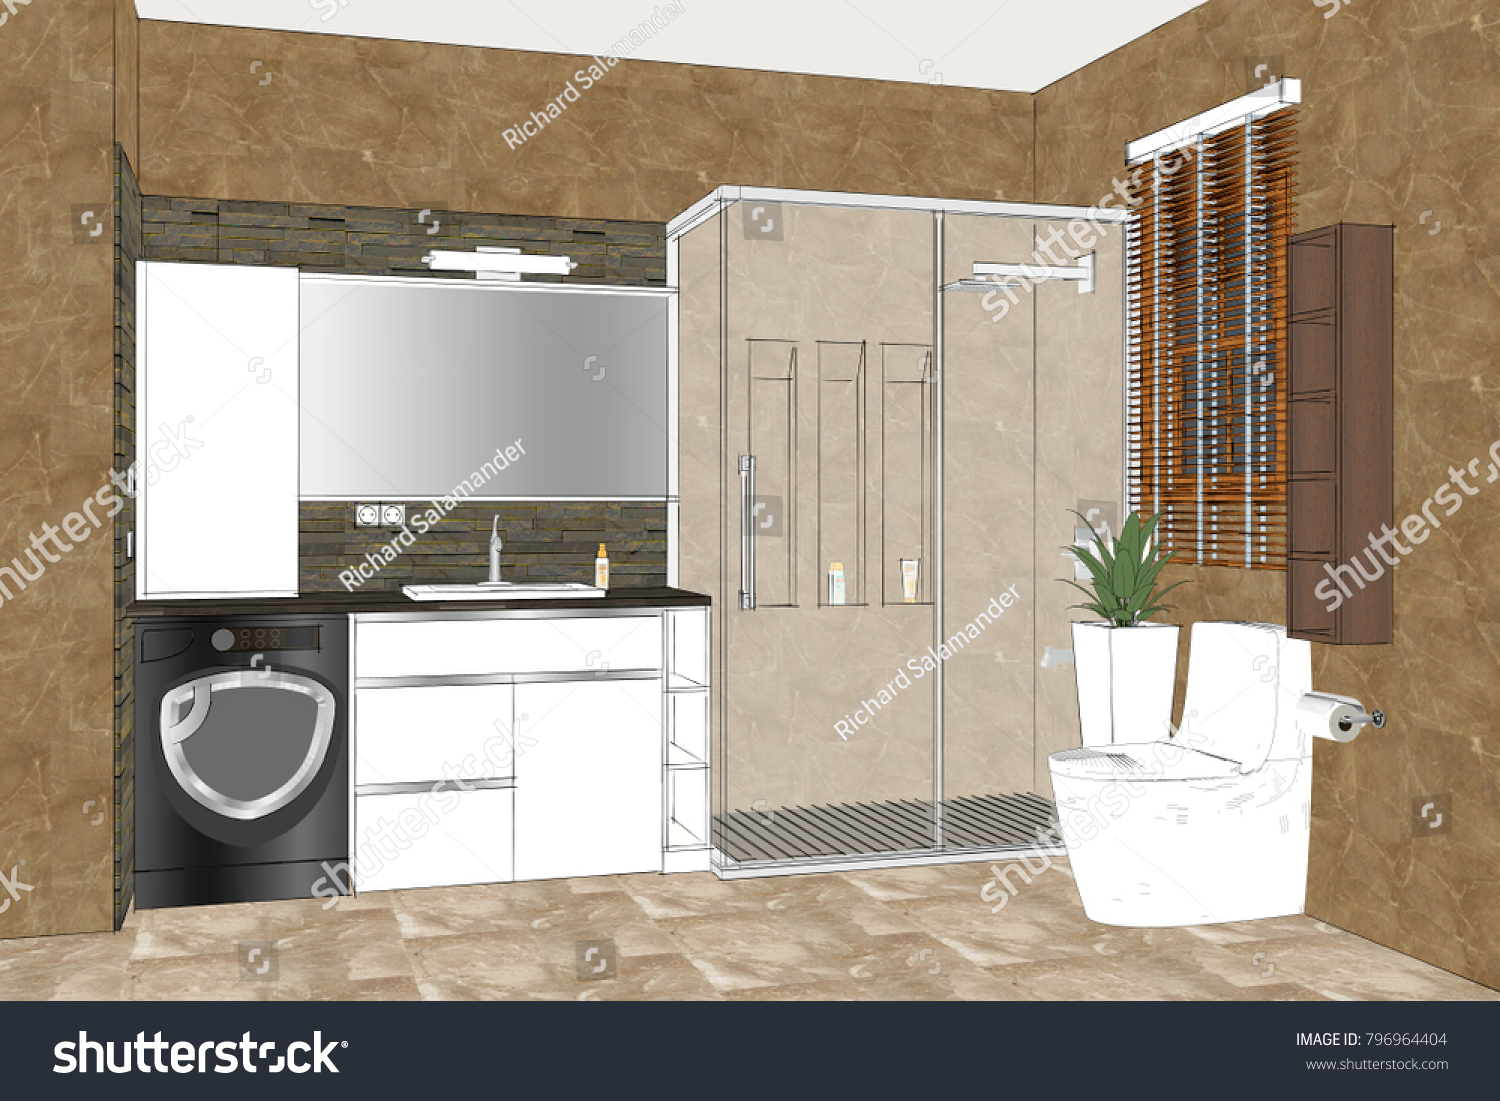 bathroom furniture designs. Linear Sketch Of An Bathroom Interior. Interior Design. Modern Furniture Designs B